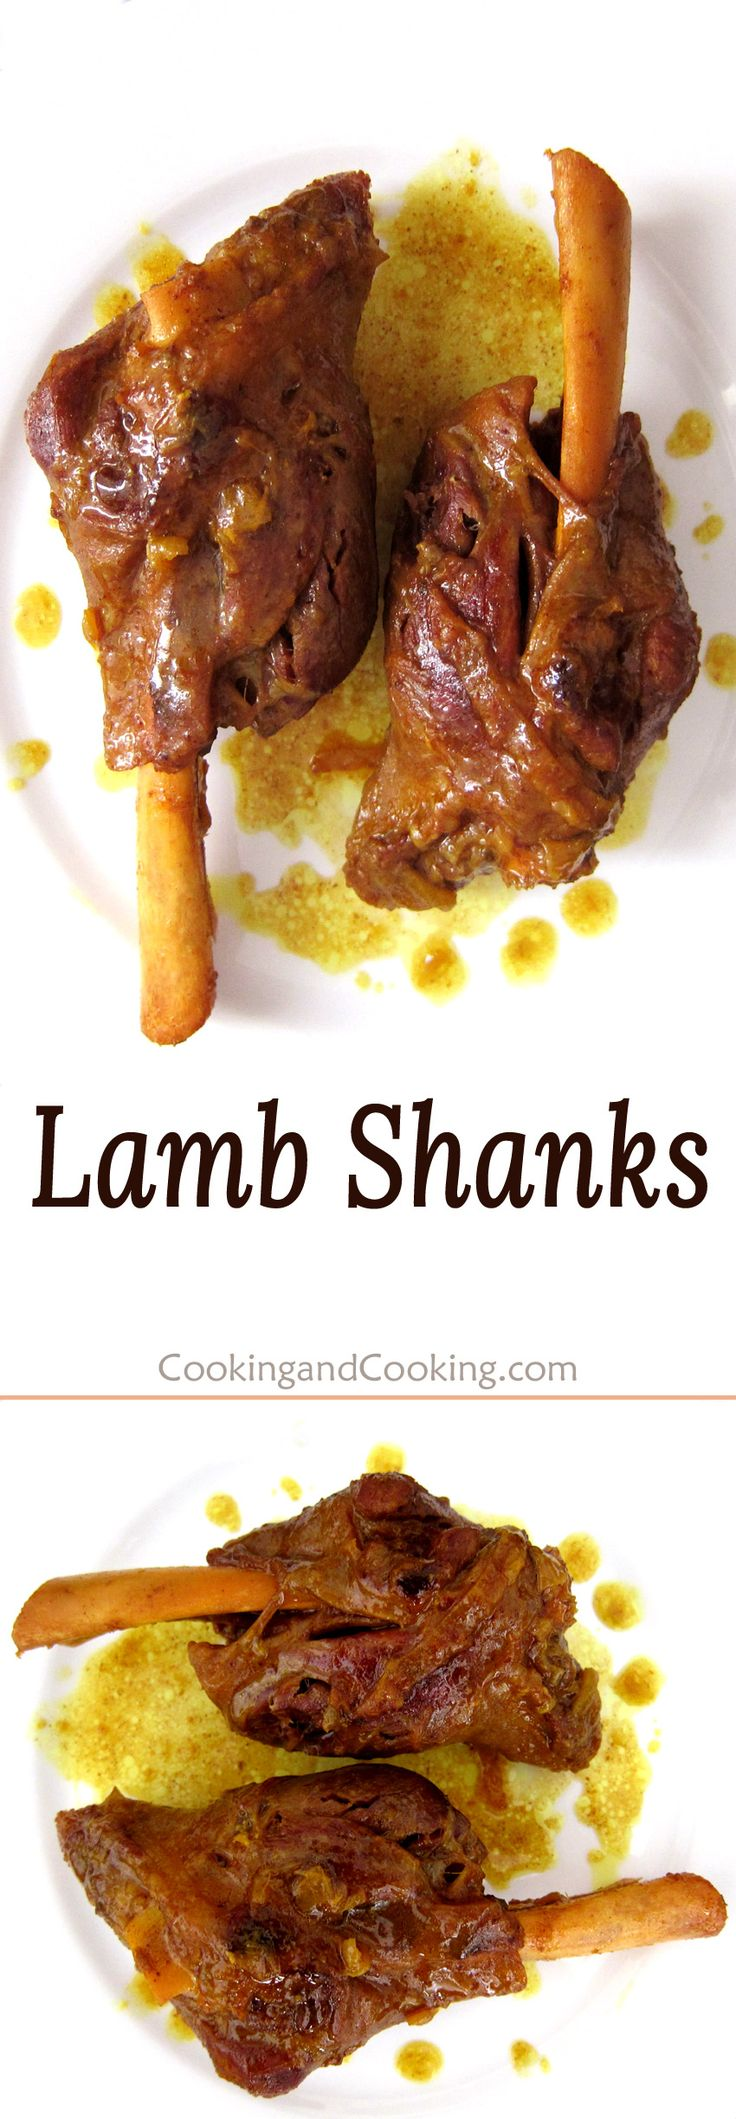 Persian Lamb Shanks | cookingandcooking.com